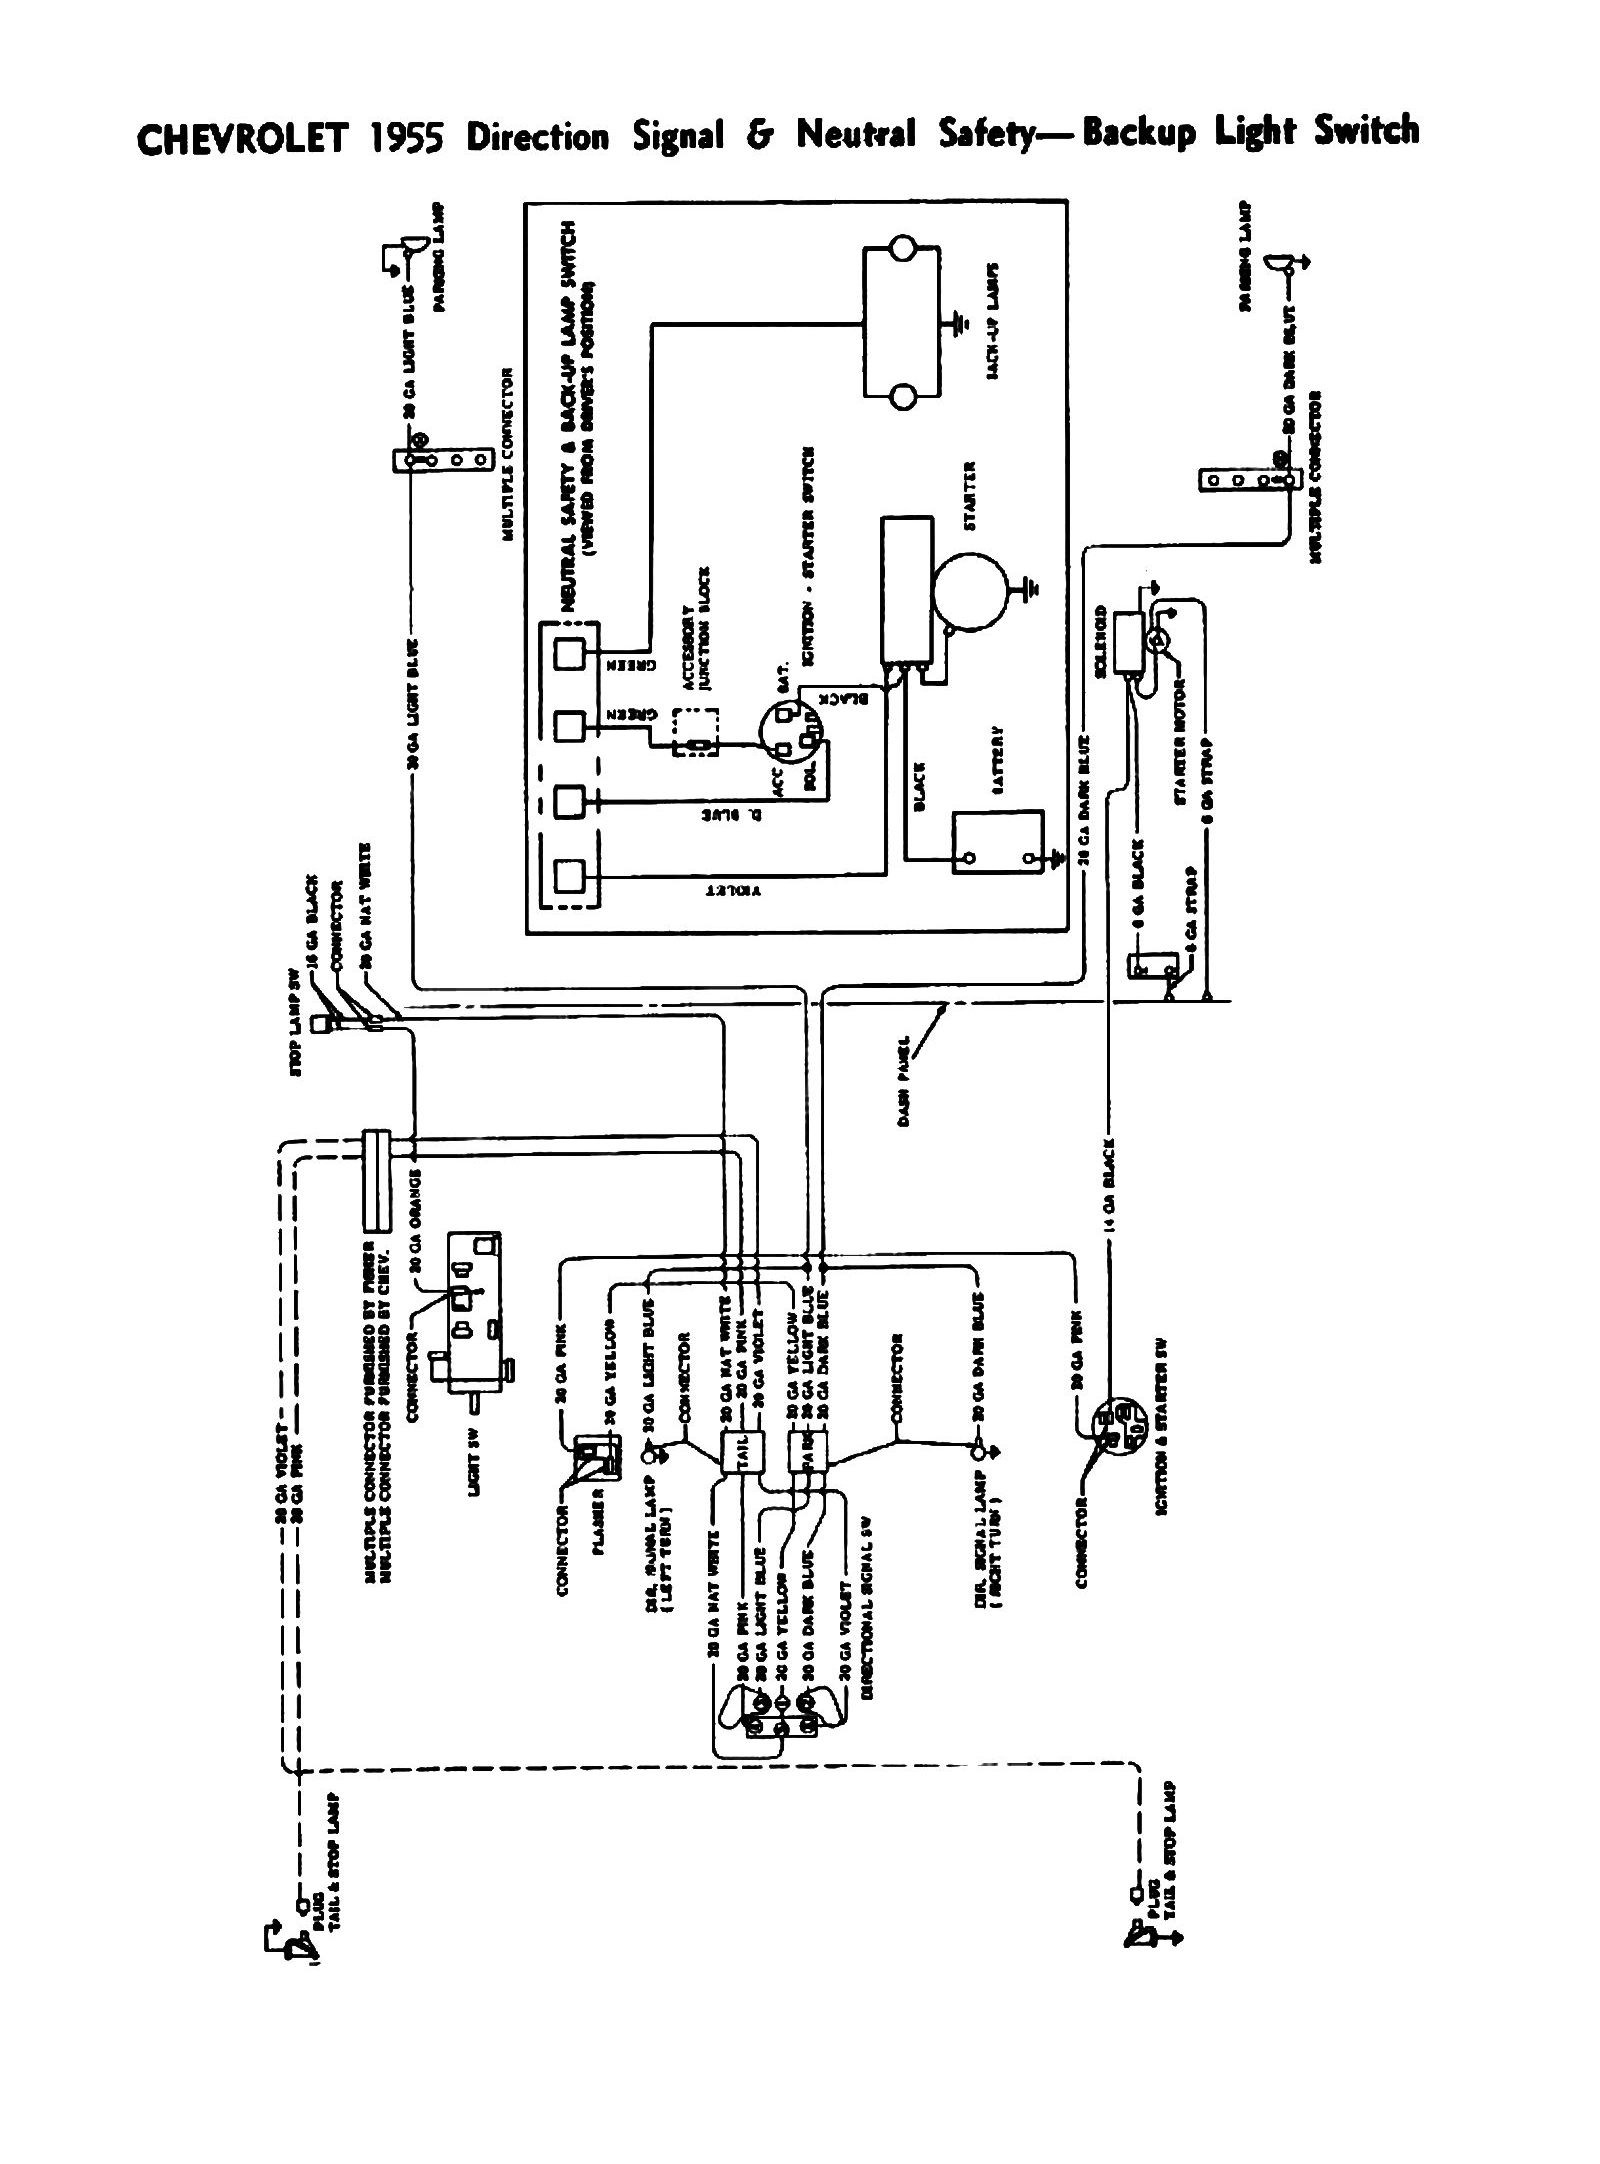 Wiring Diagrams for Chevy Trucks 1957 Chevy Heater Wiring